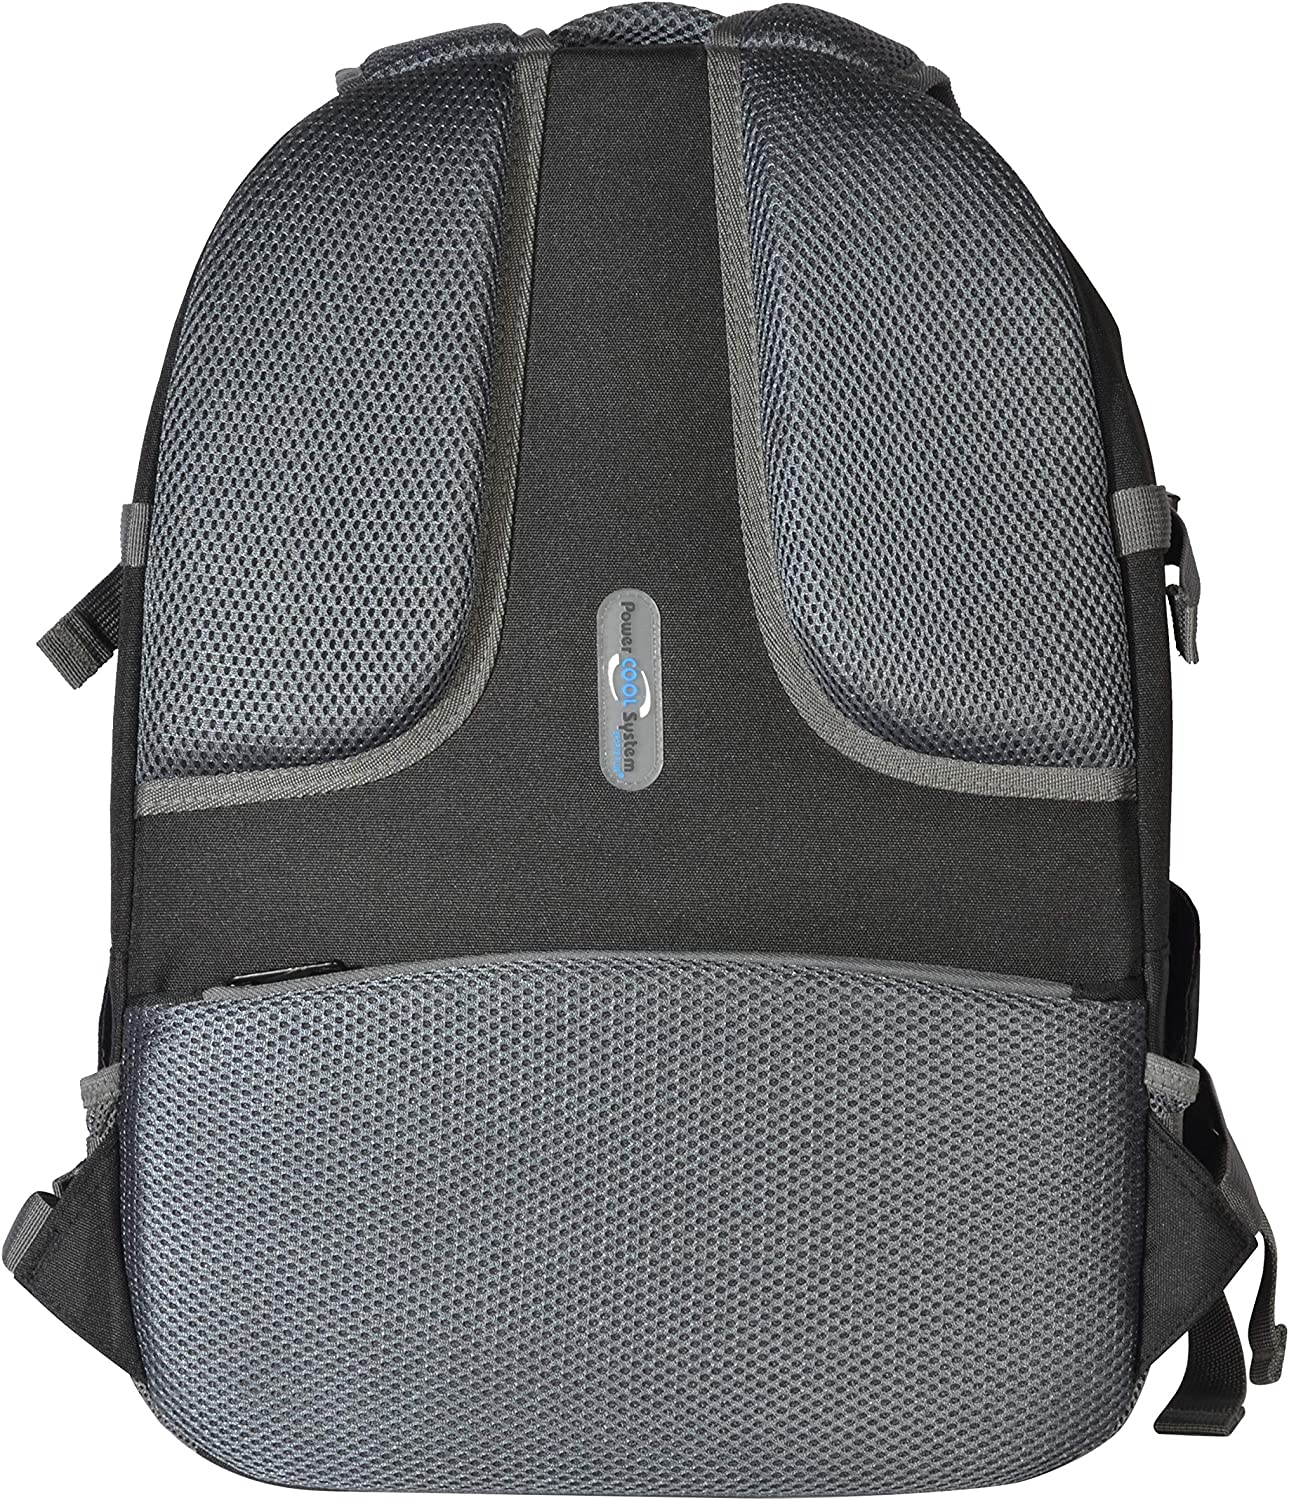 Olympia USA Skyfall 19 Outdoor Backpack 37l